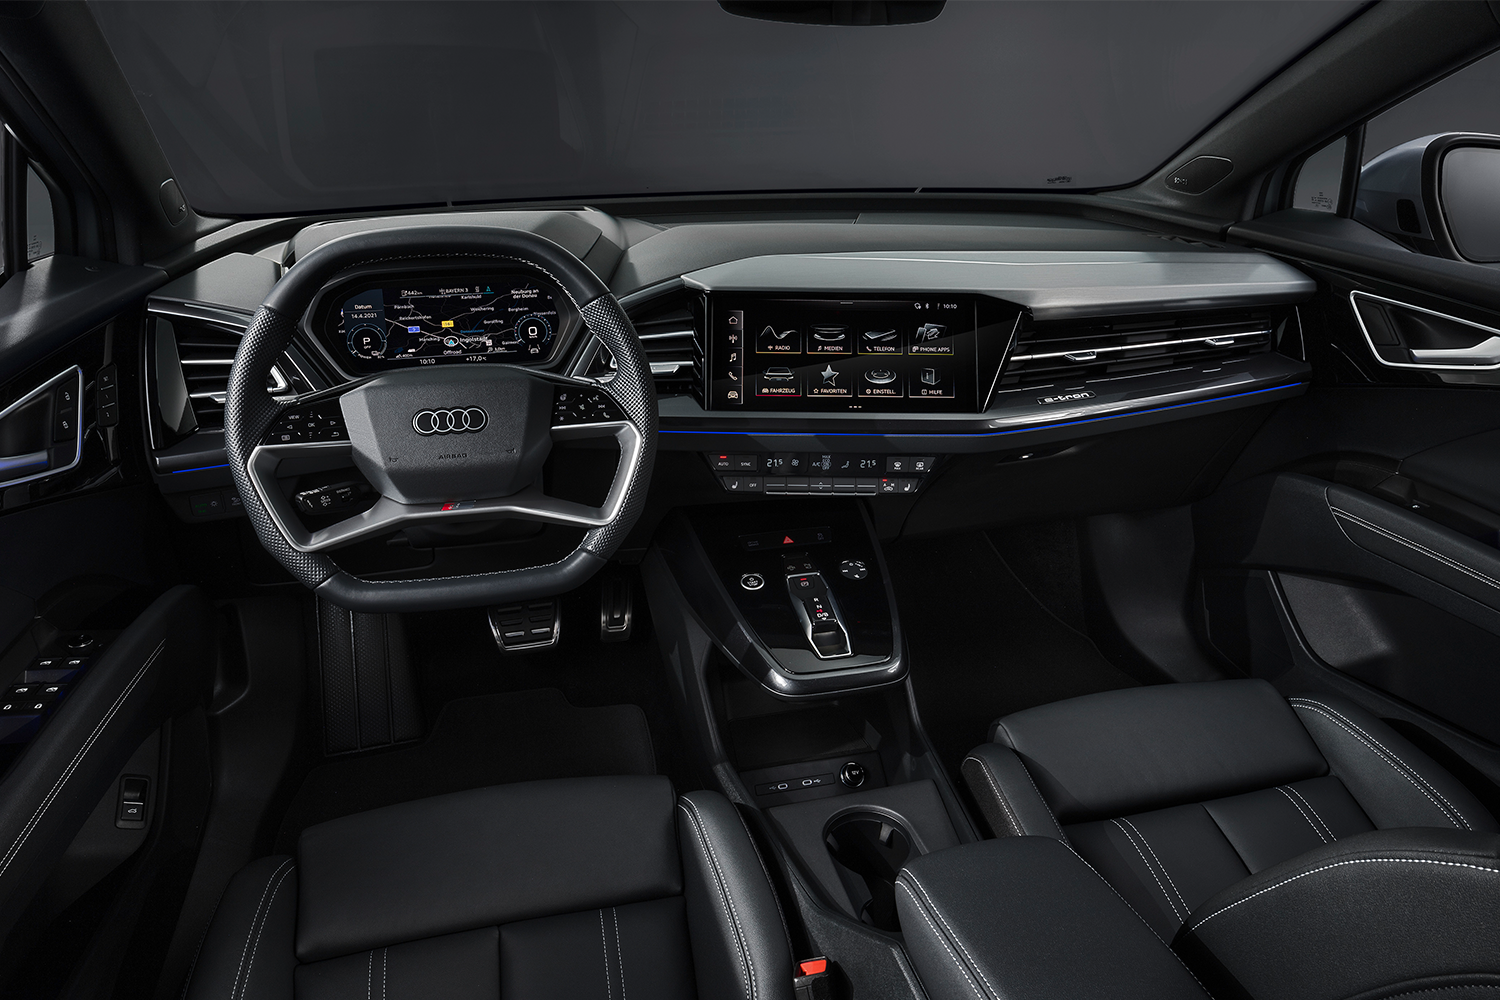 The interior of the Audi Q4 E-tron featuring a Sonos audio system